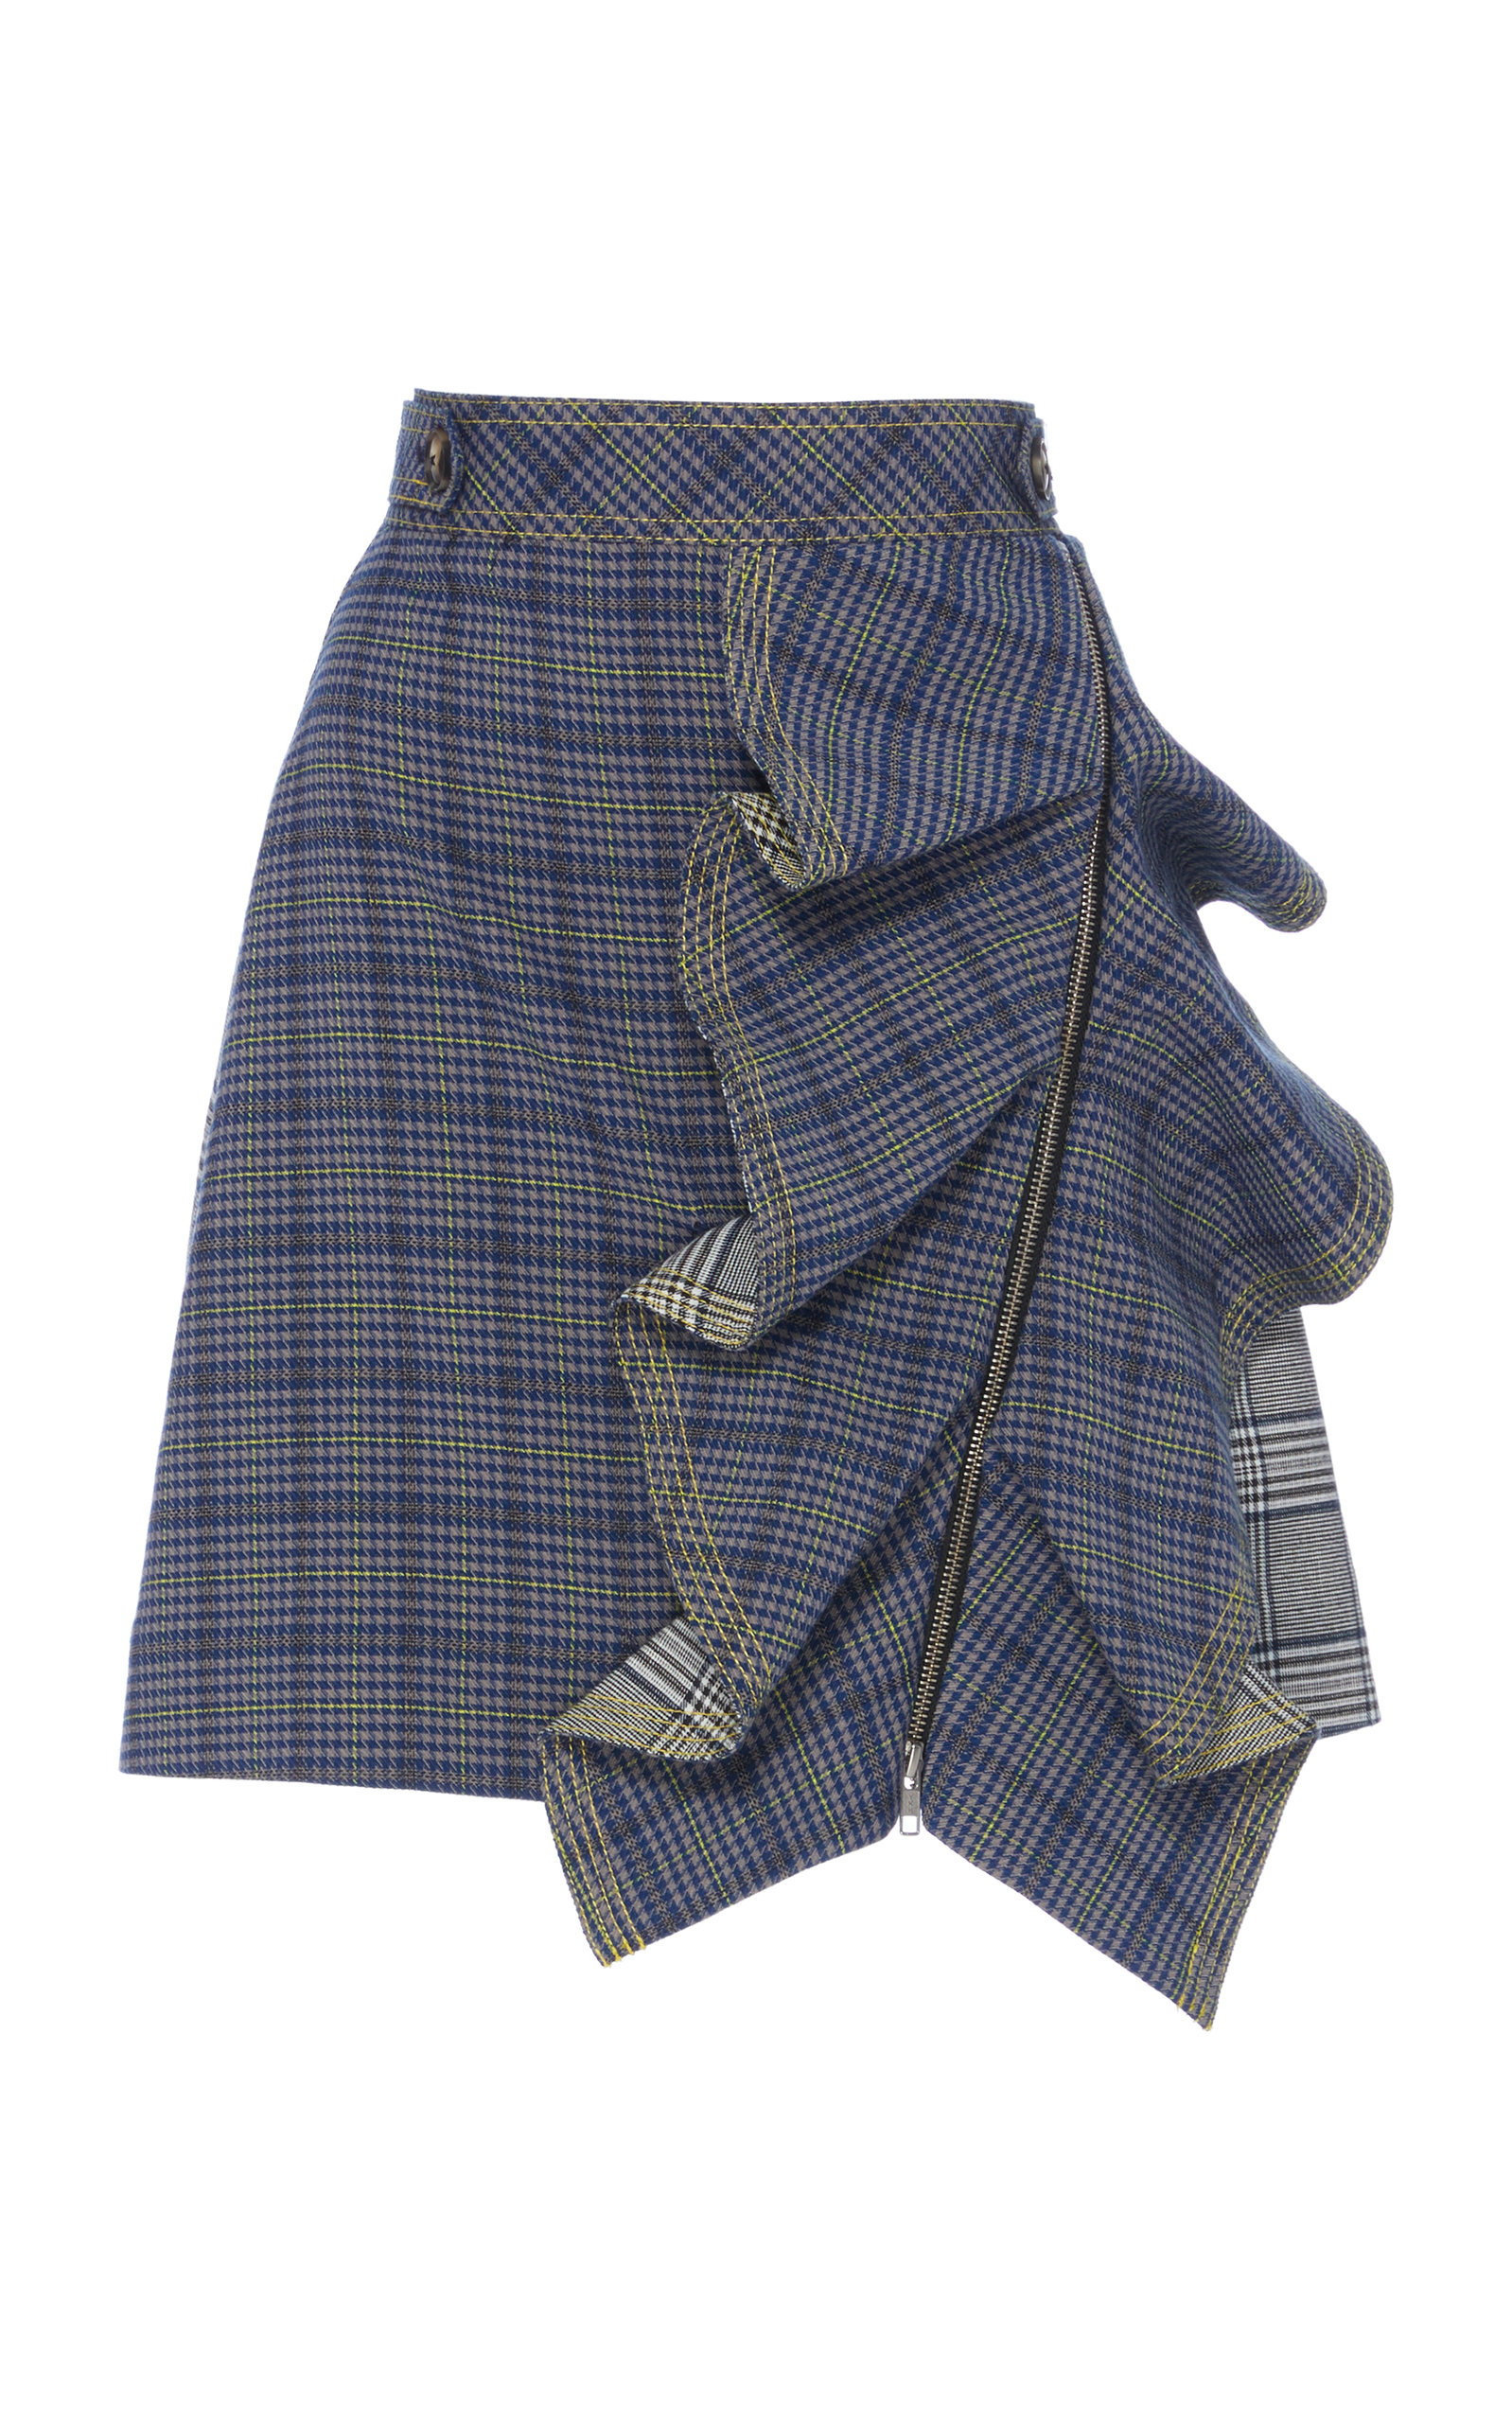 Ruffled Checked Tweed Mini Skirt, Plaid